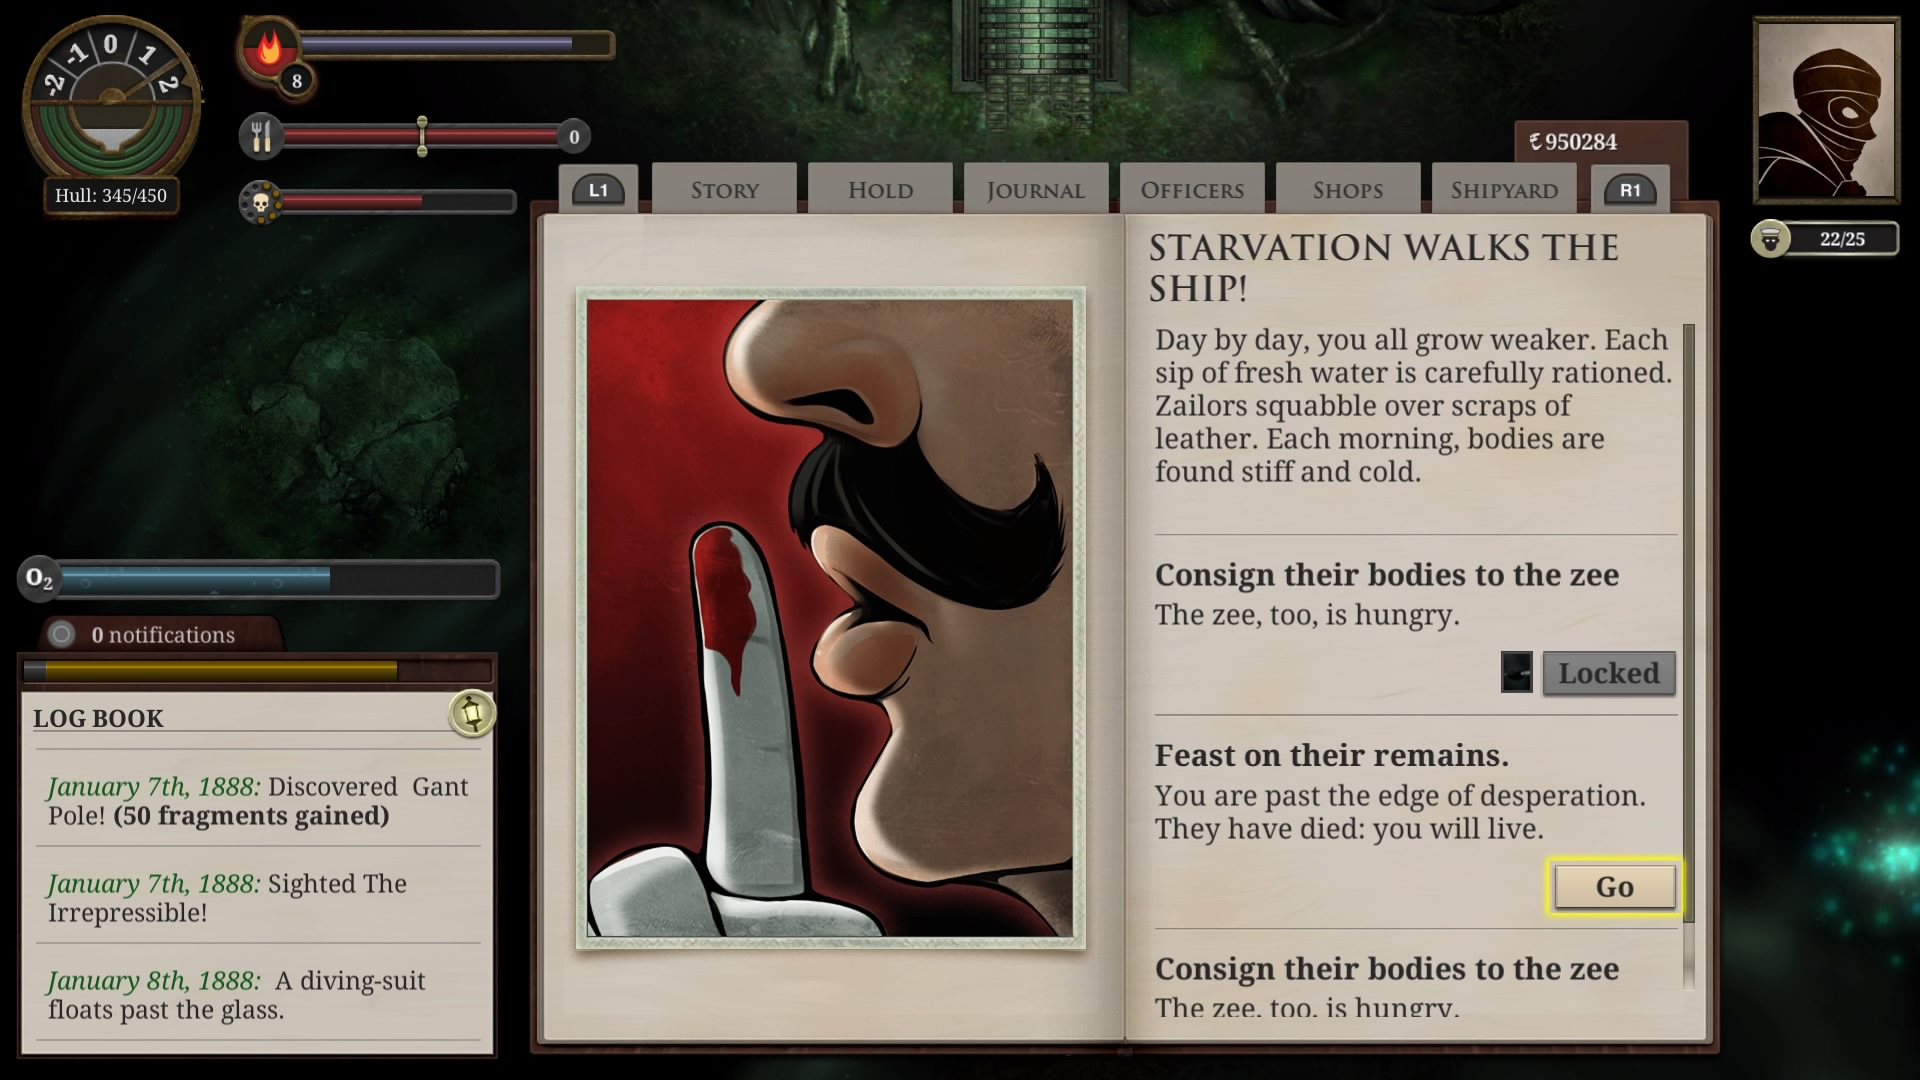 Action, adventure, exploration, Failbetter Games, indie, Lovecraftian, PS4, PS4 Review, Rating 6/10, RPG, Story Rich, Sunless Sea, Sunless Sea: Zubmariner Edition, Sunless Sea: Zubmariner Edition Review, survival